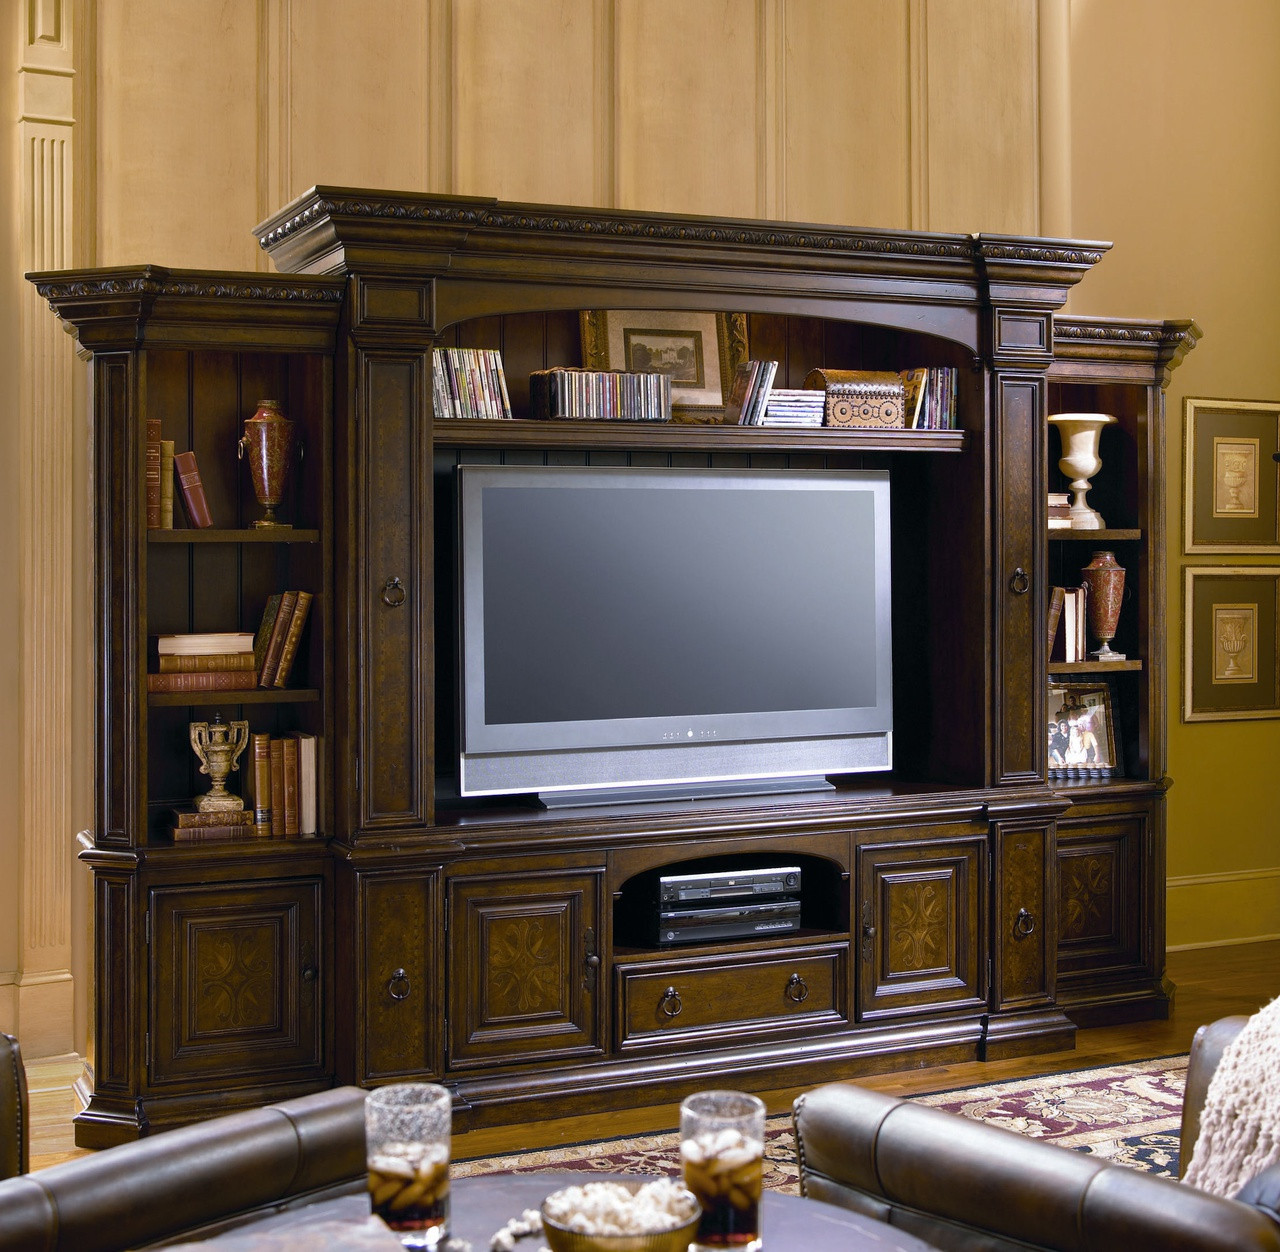 Bolero TV Entertainment Wall Unit